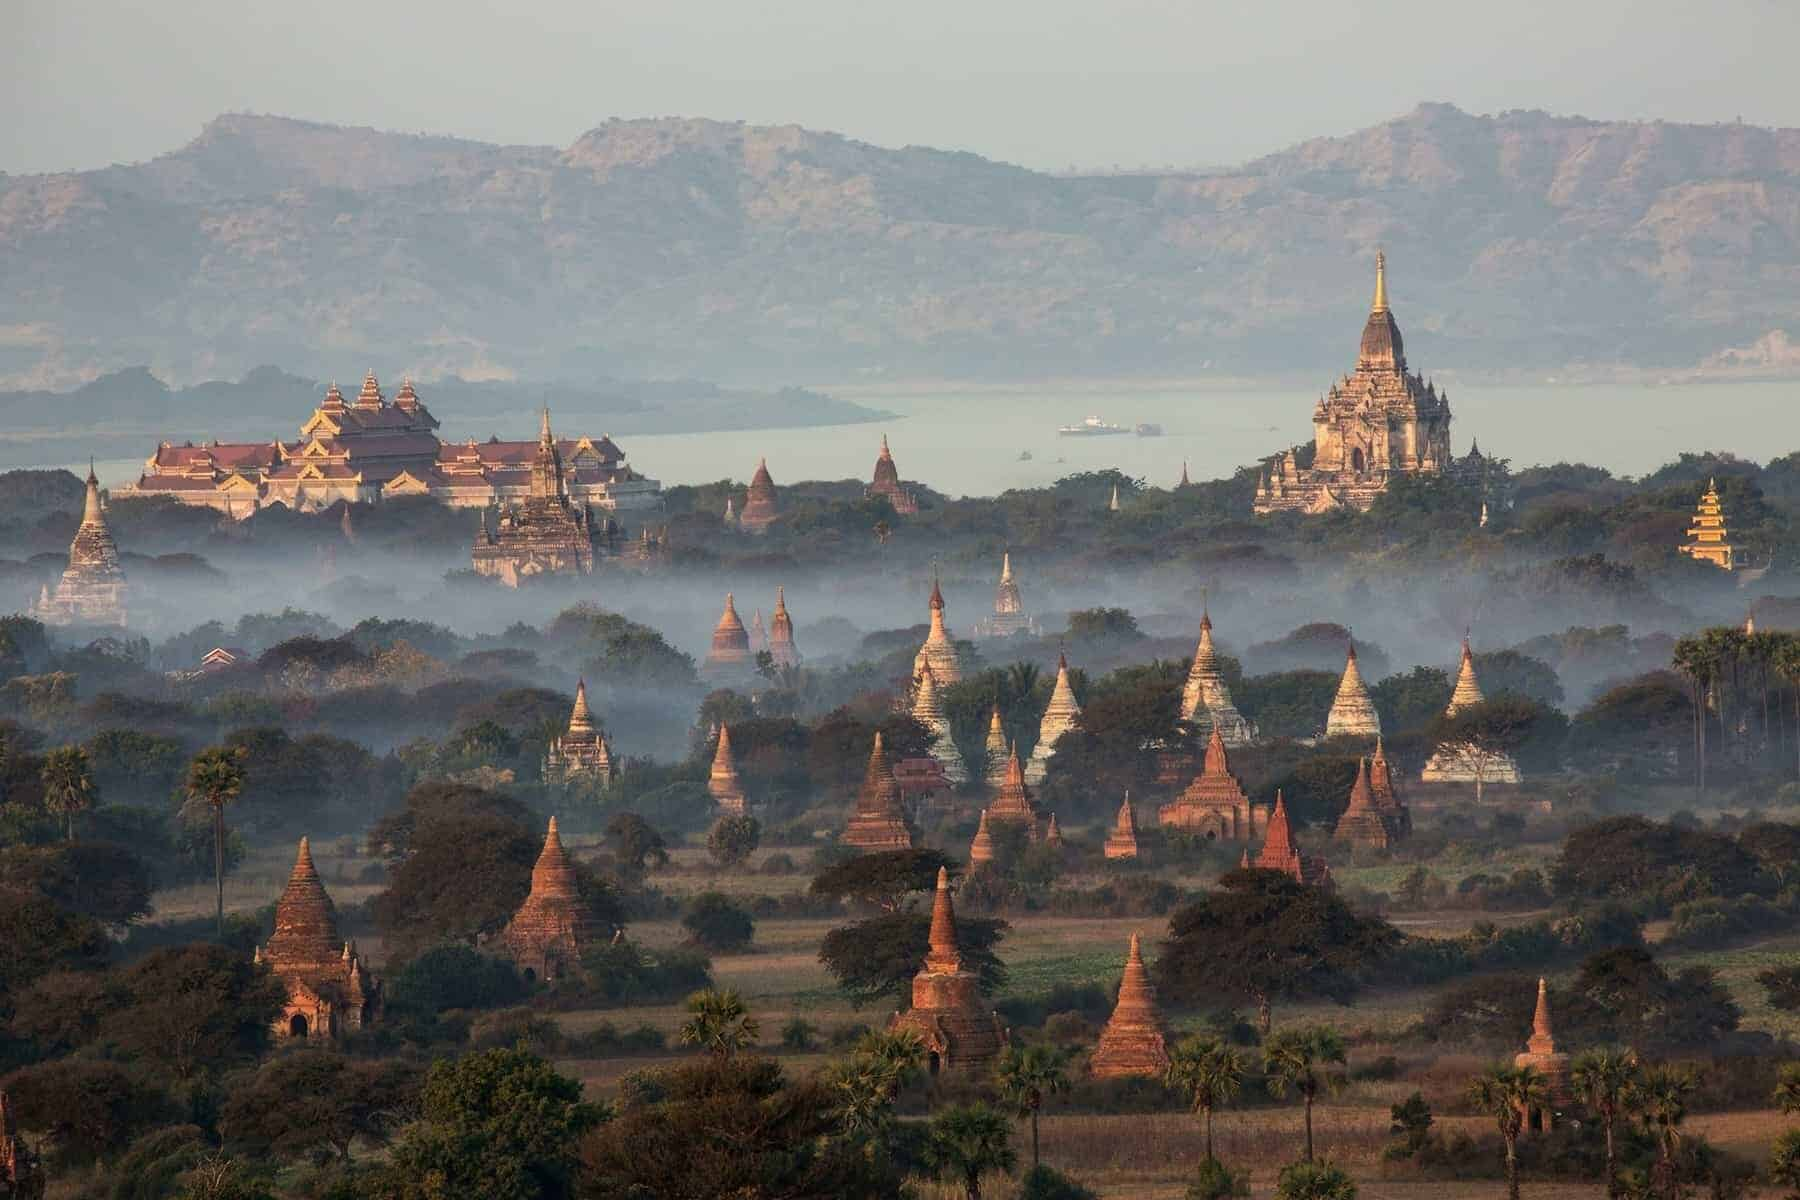 Hot air balloons flying over the temples of the Archaeological Zone in Bagan in the early morning sunlight. In the distance is the Irrawaddy River. Myanmar (Burma).